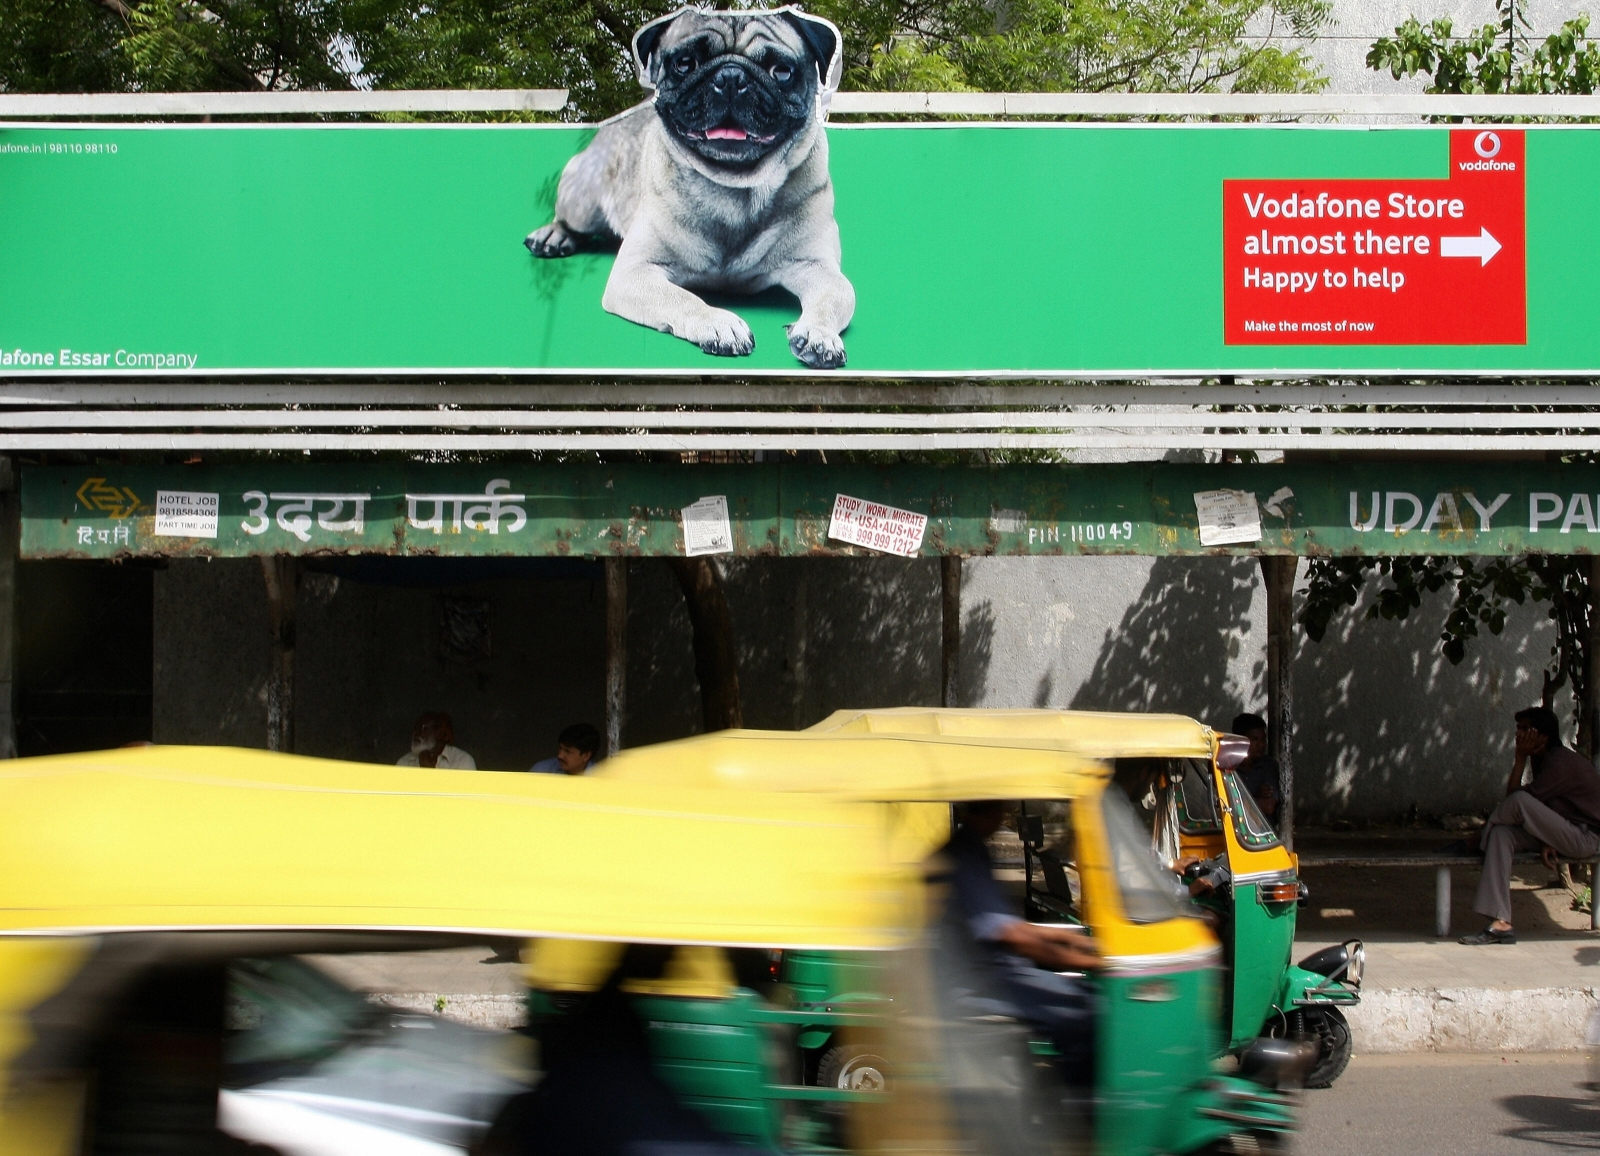 Vodafone invests more than £5bn in its Indian subsidiary to take on rivals ahead of an airwaves auction